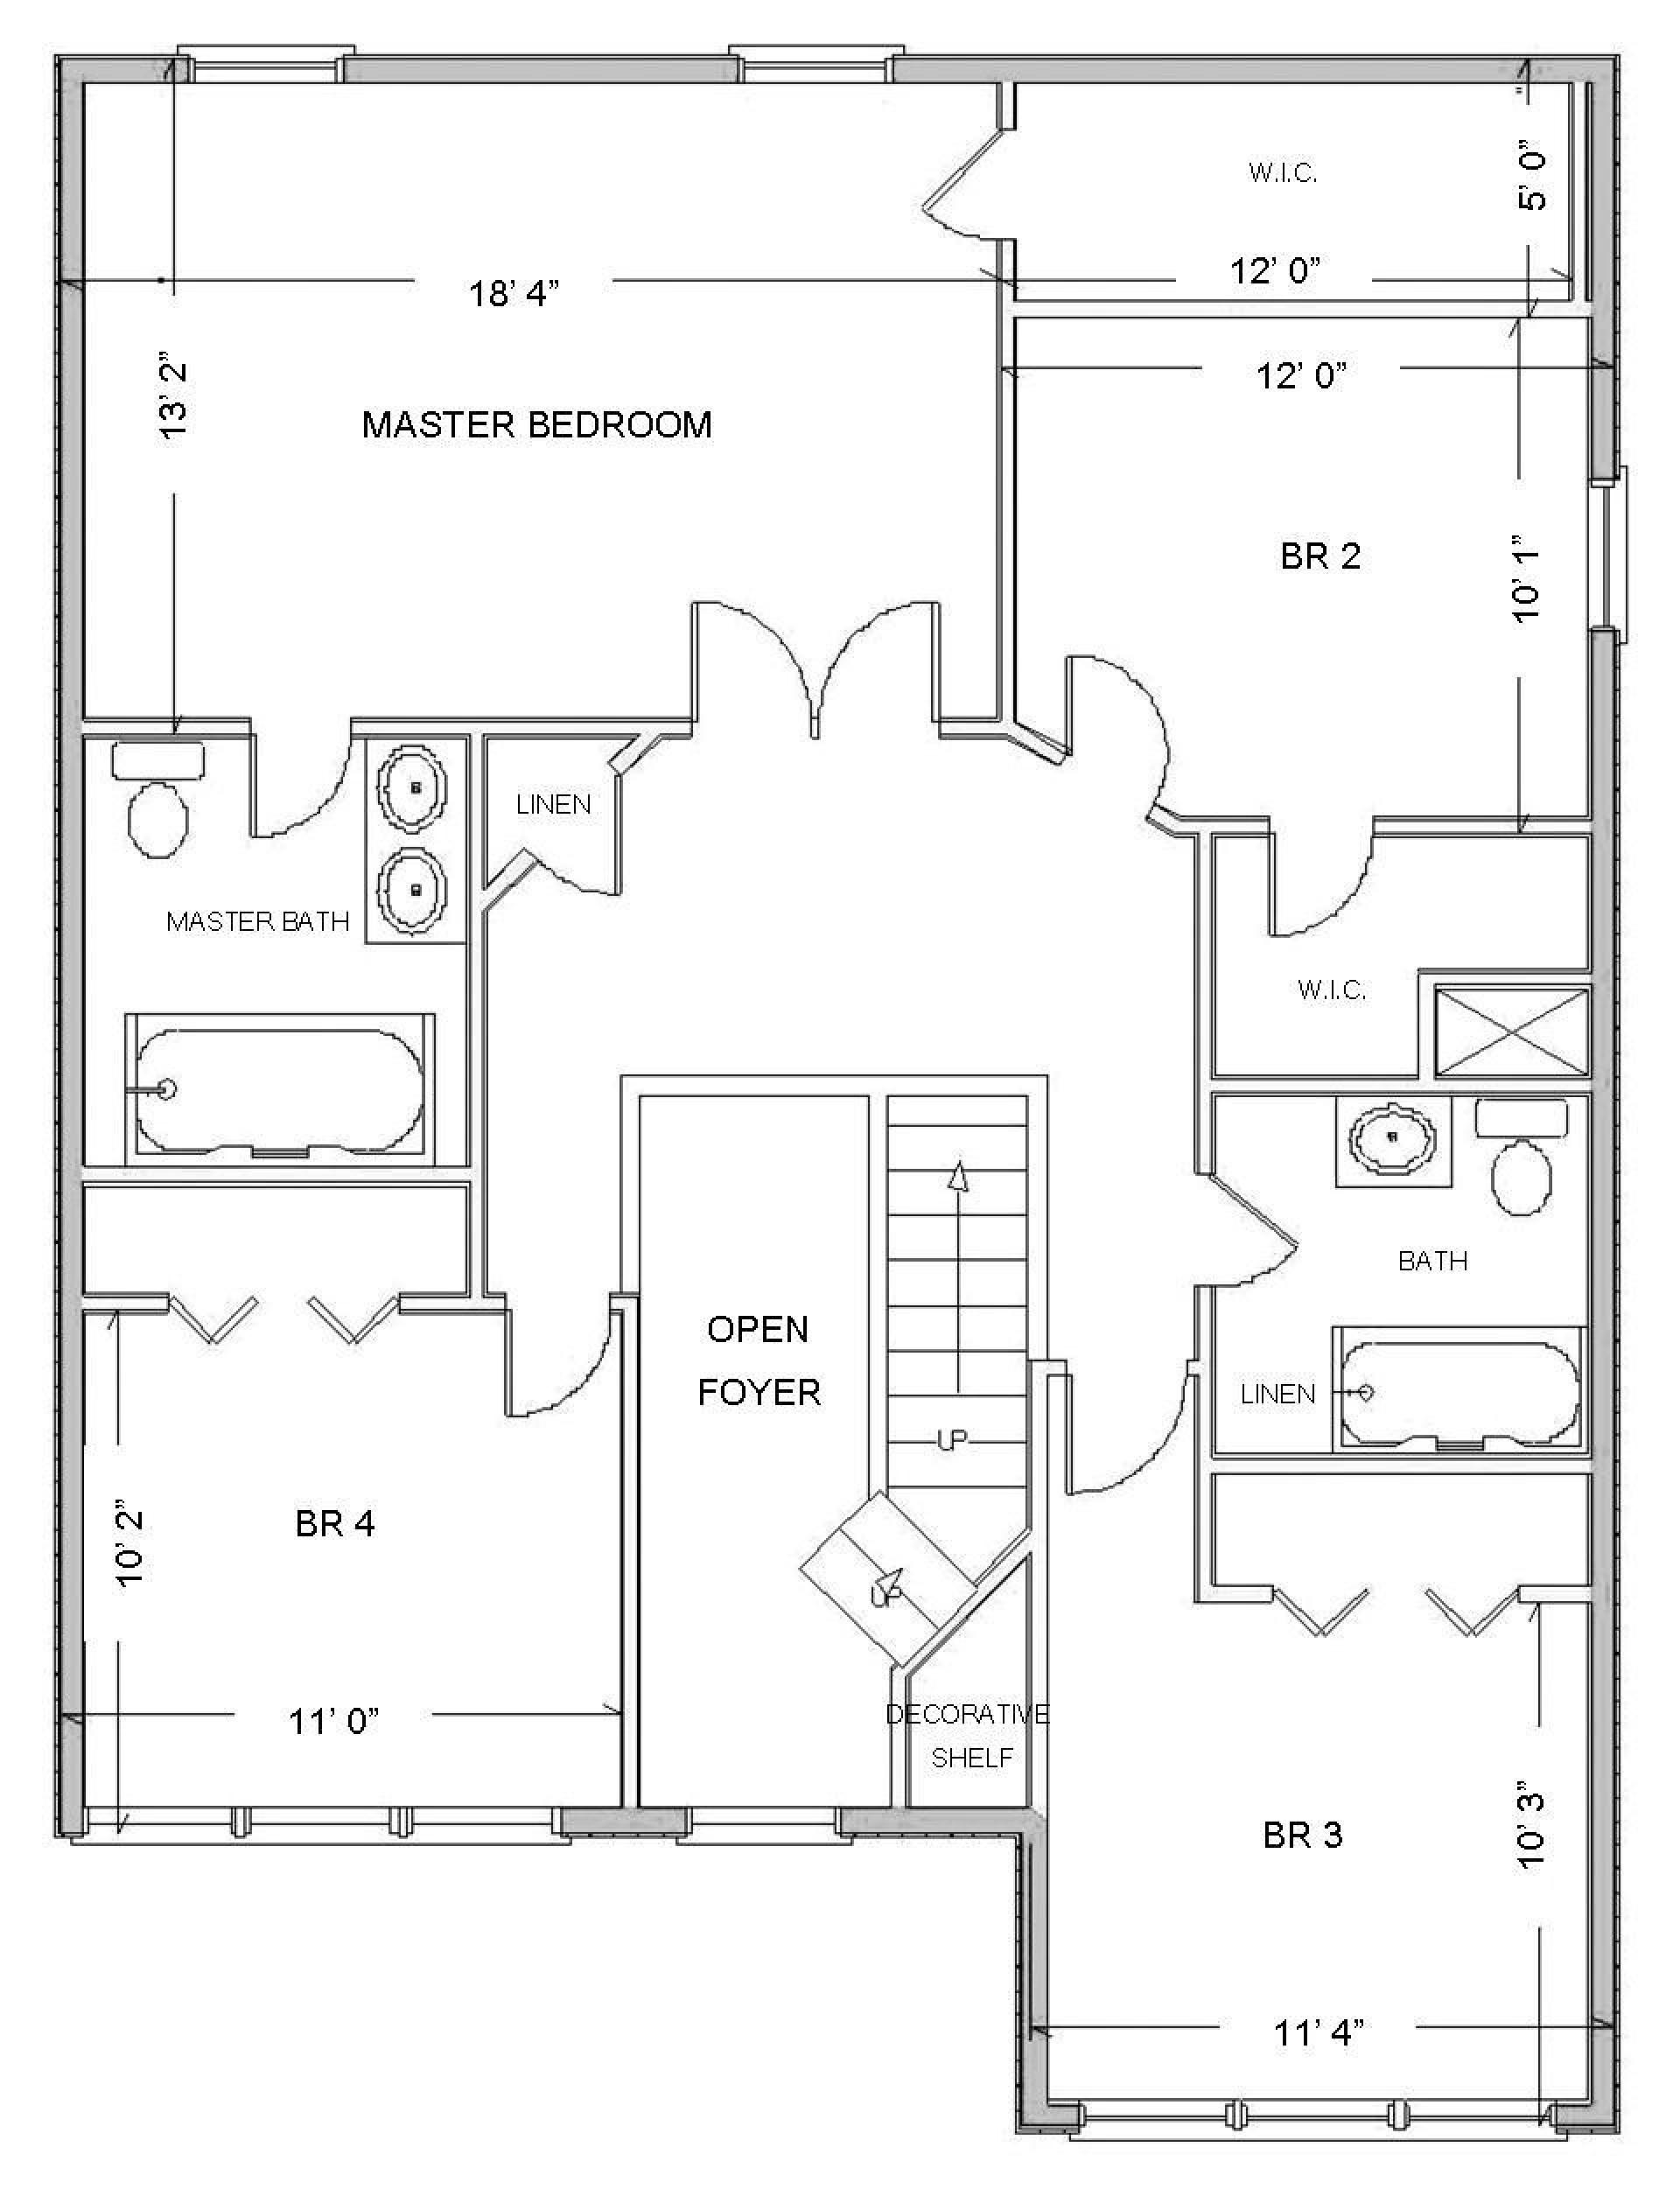 002 Frightening Free Floor Plan Template Concept  Excel Home House Sample1920